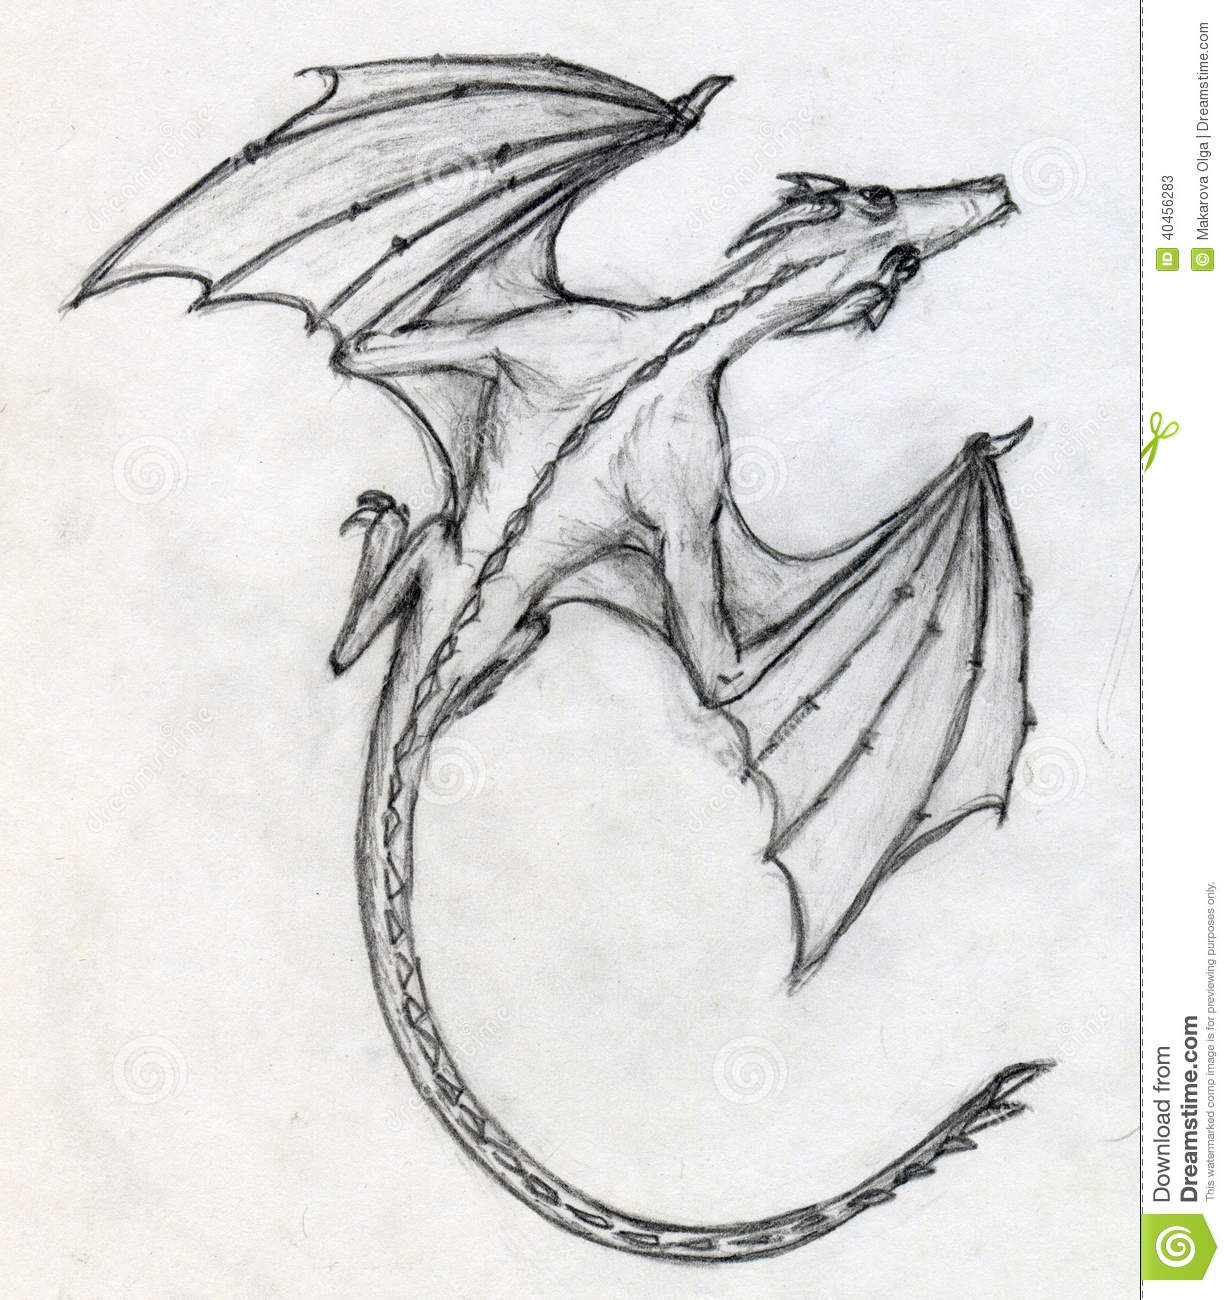 Hand drawn pencil sketch of a little dragon with bat like wings